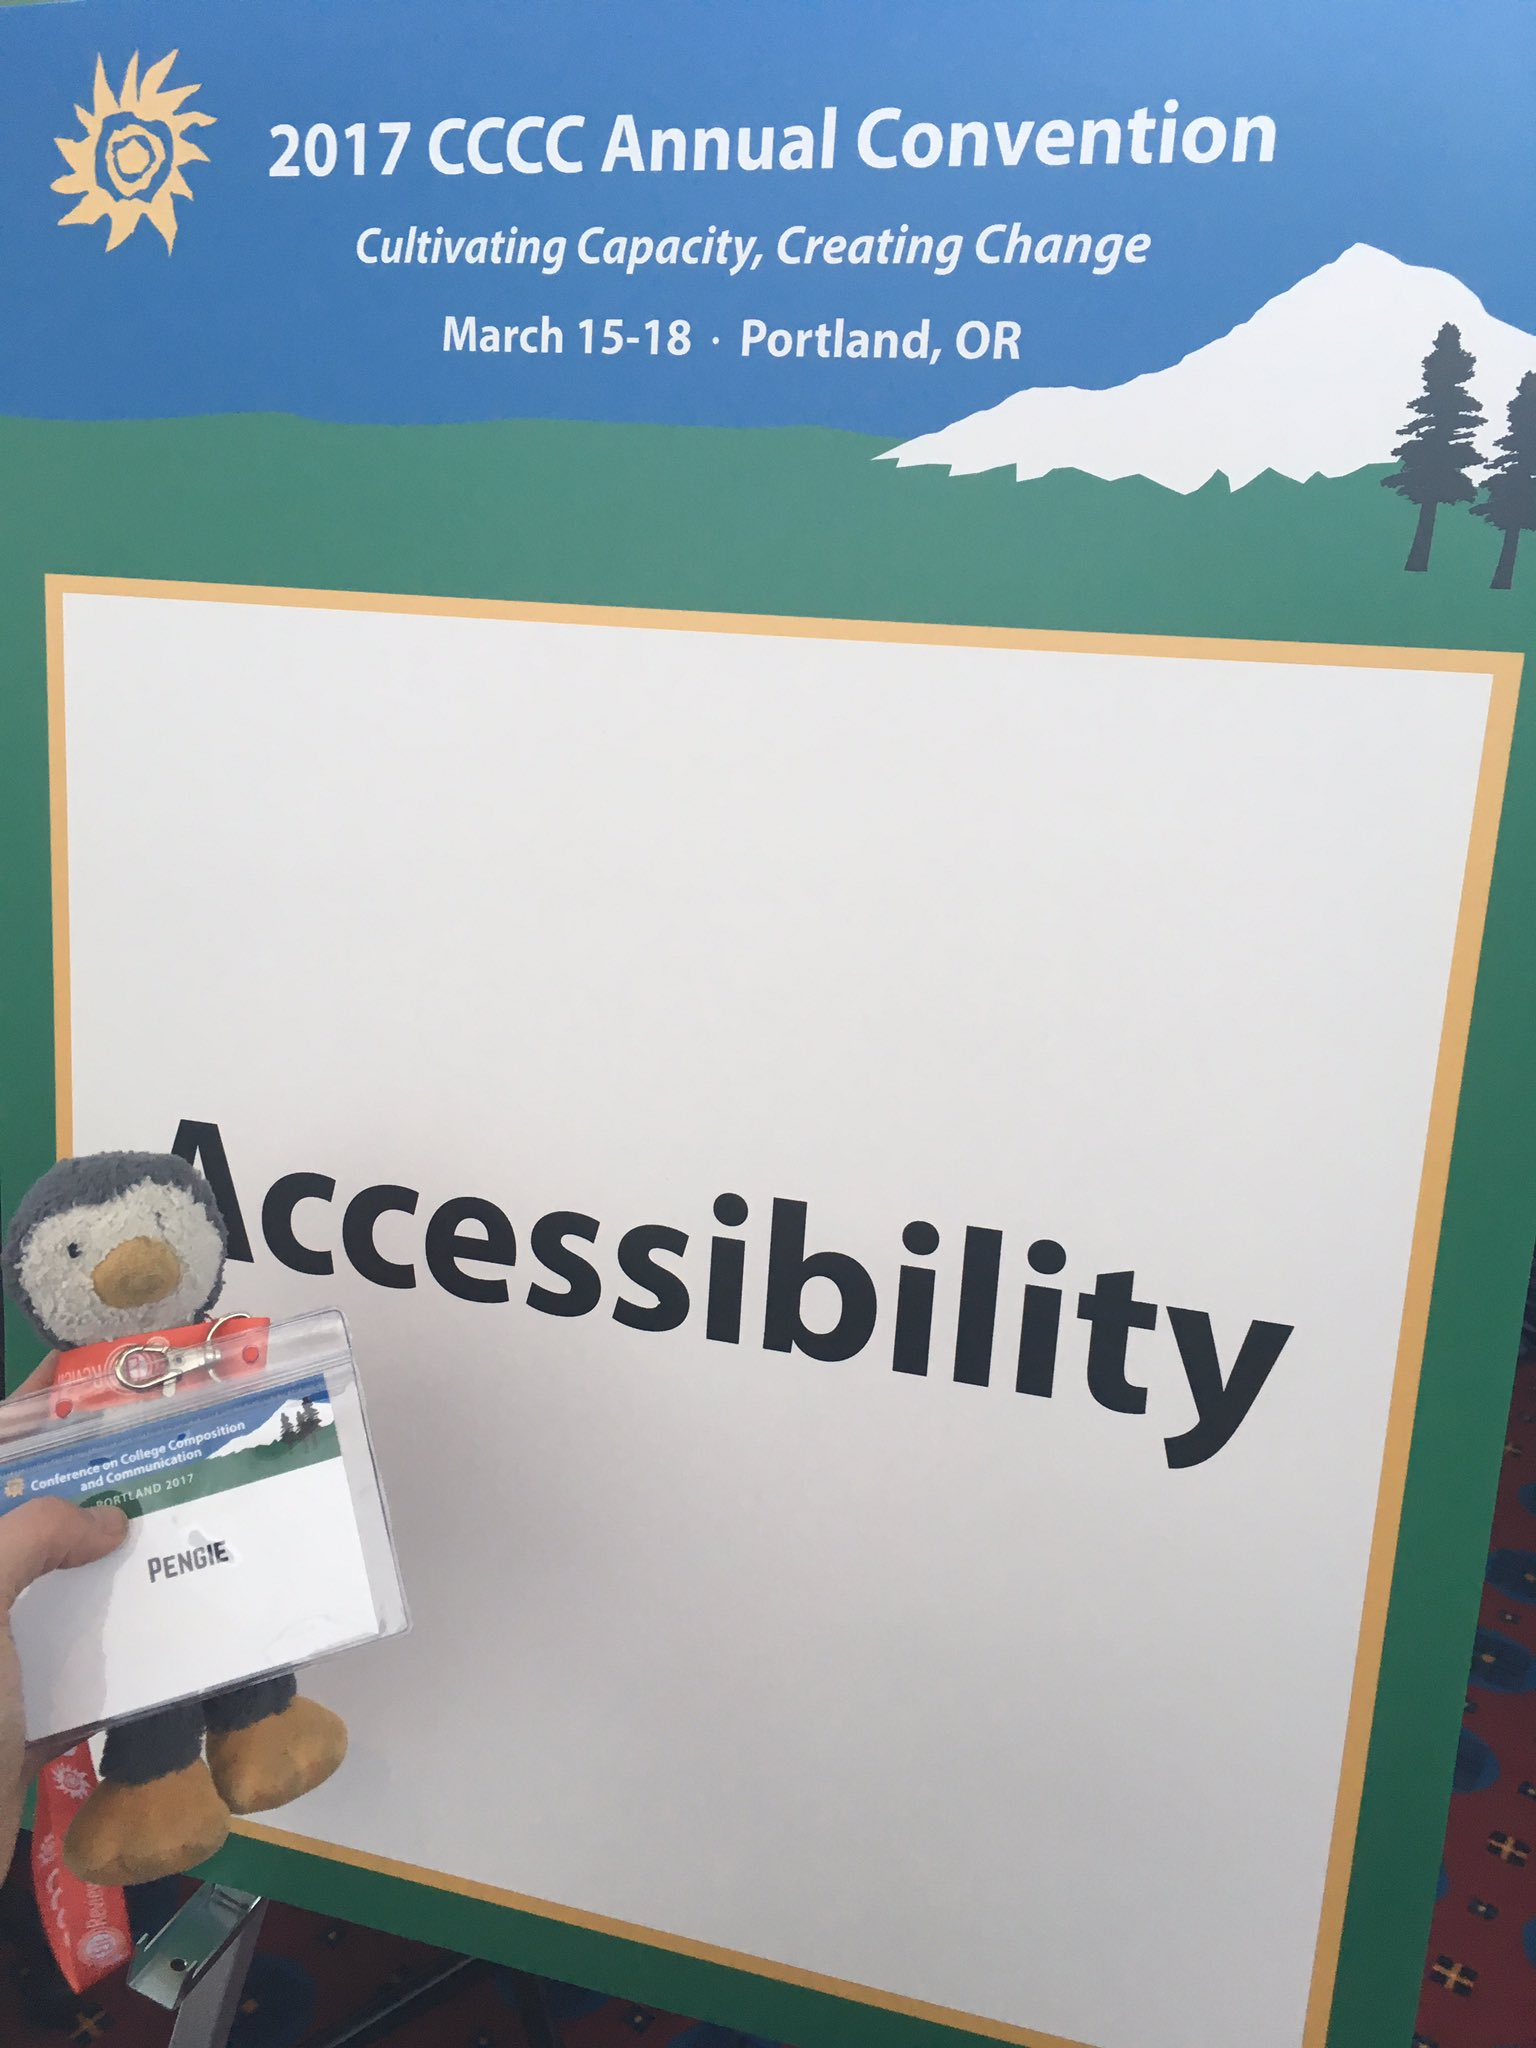 Pengie checks out the Access Table to learn about the disability studies SIG and accessibility at #4c17! https://t.co/RDP1jGBPsb